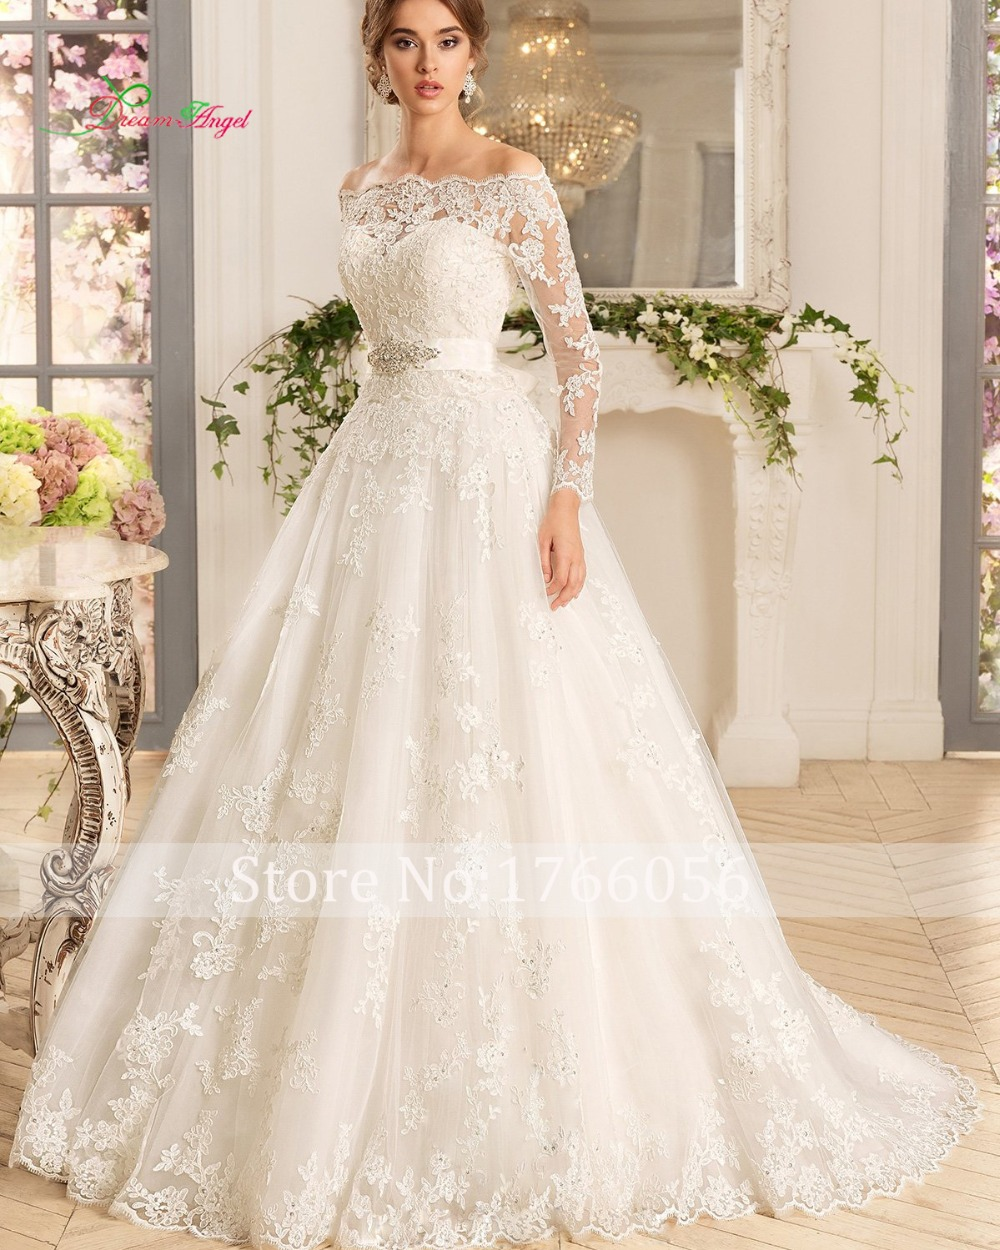 1f48196f New Designer Luxury Boat Neck Long Sleeve Lace A Line Wedding Dress 2017  Cheap Appliques Beaded